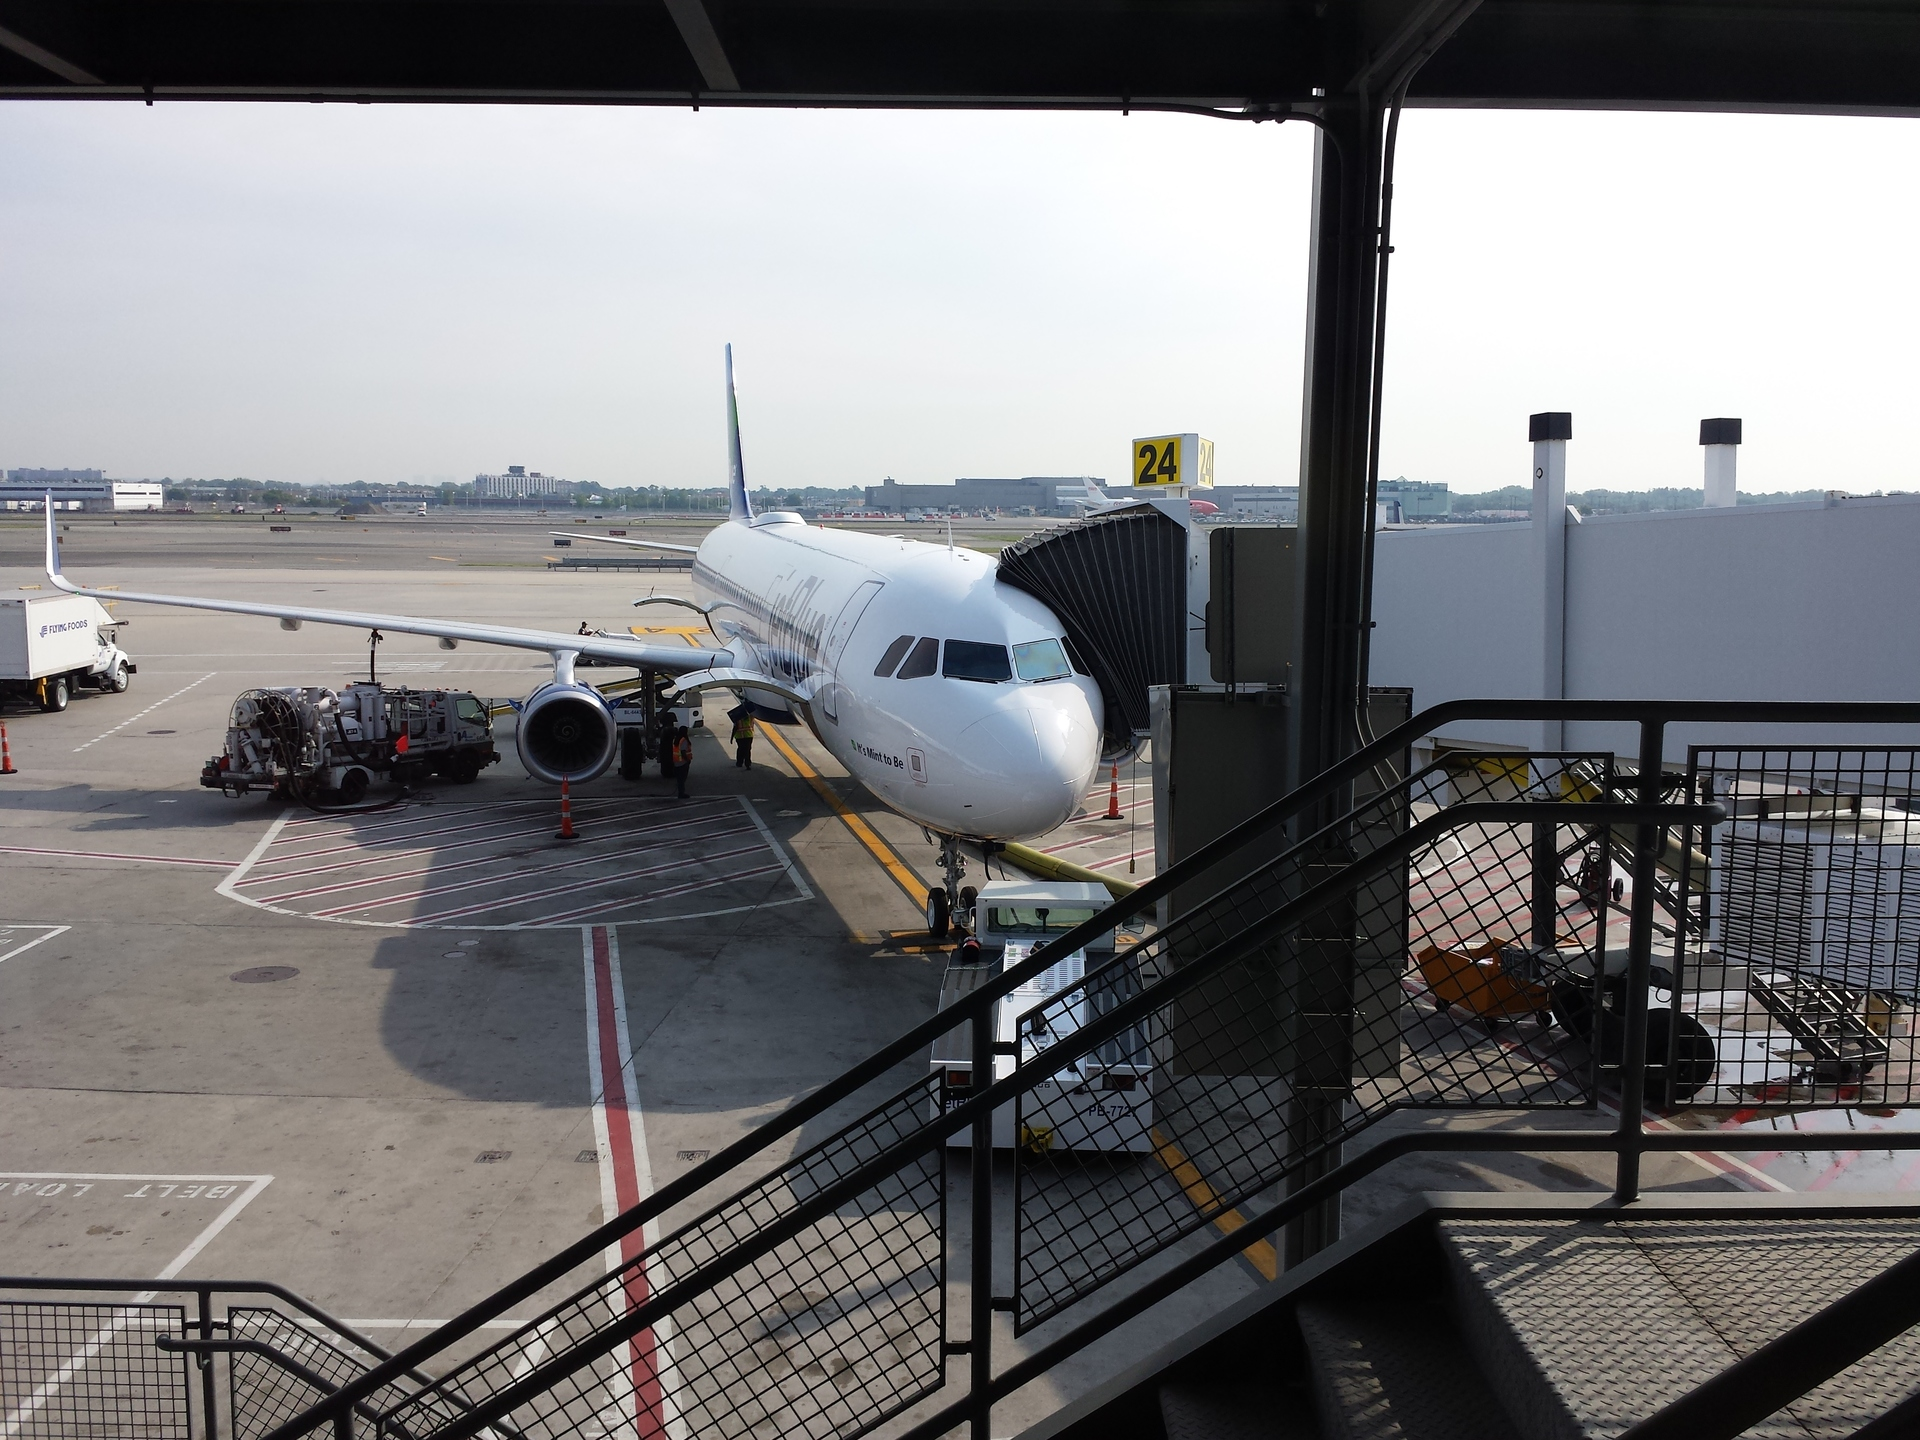 Boarding A Shiny New JetBlue A321 On Its Third Official Day In Service Exit Seat 6F